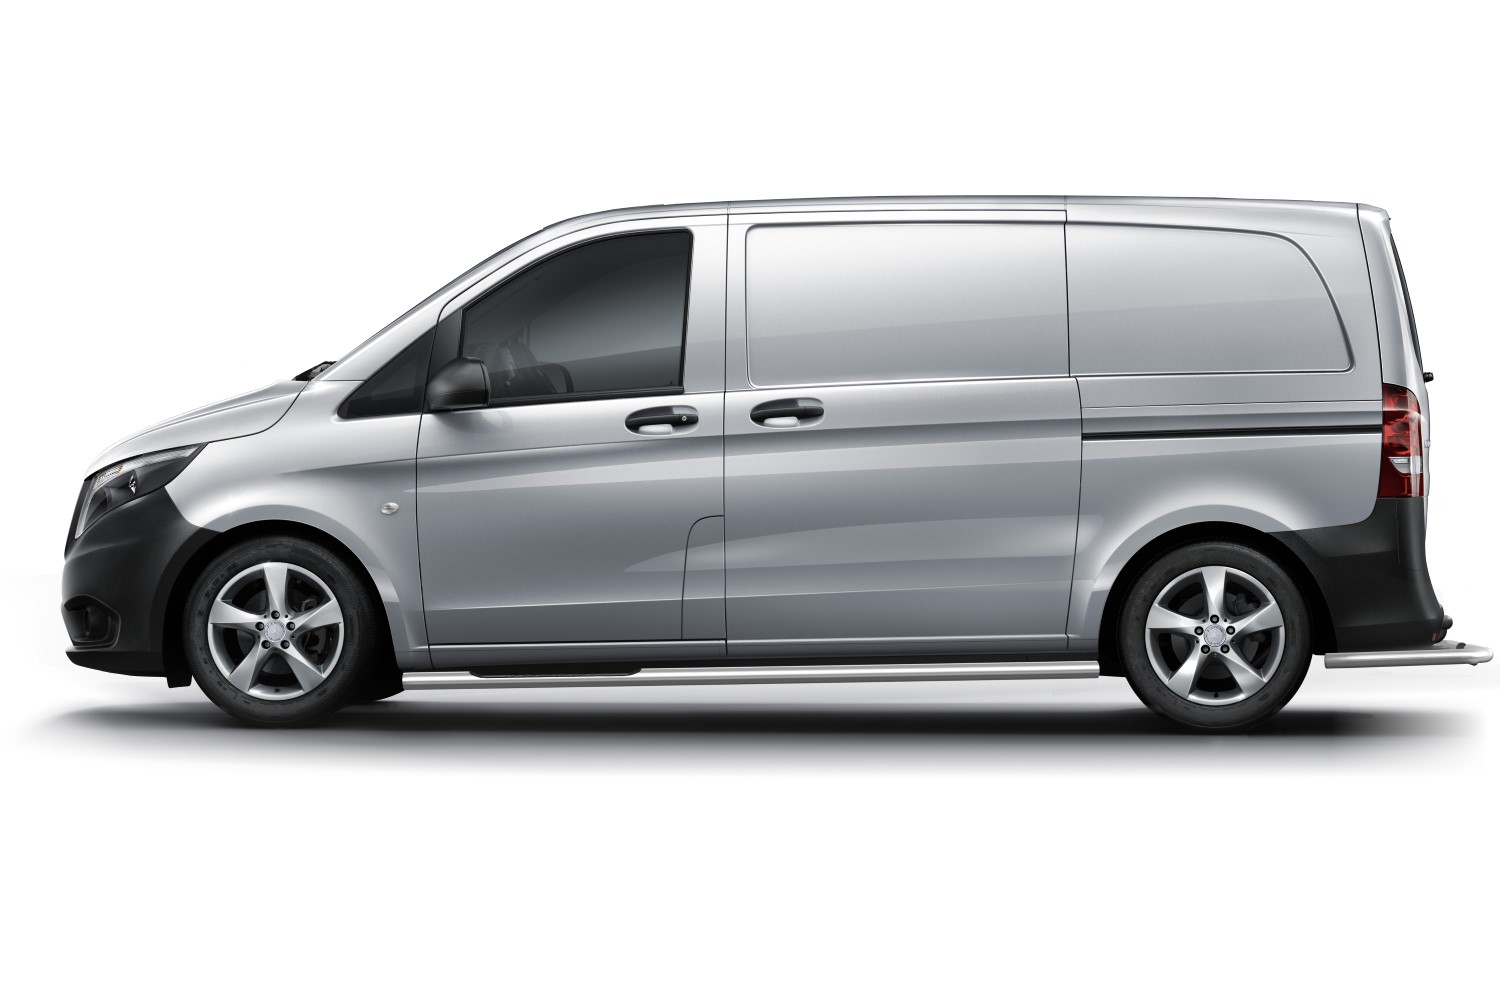 Mercedes-Benz Vito - Viano (W639) 2003-2014 side bars stainless steel  polished 60 mm with 3 steps